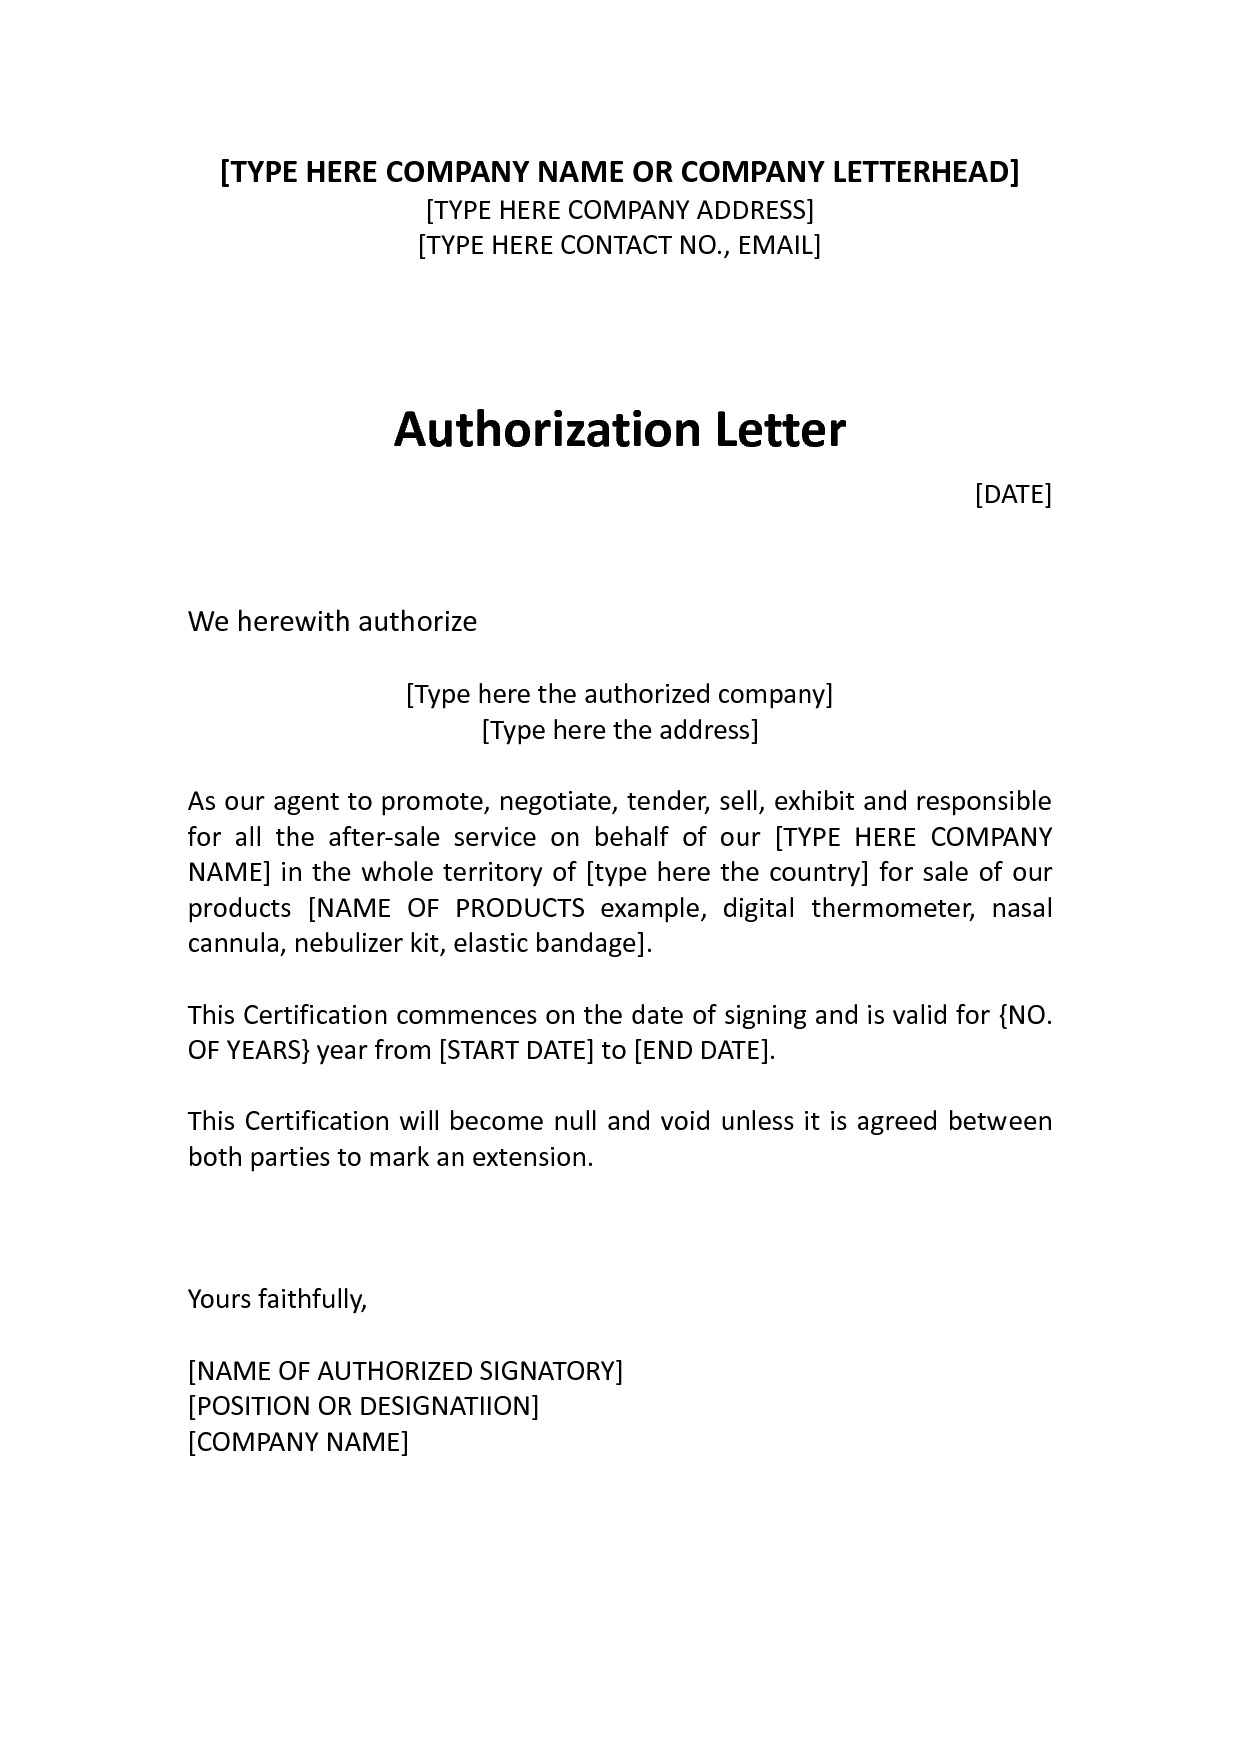 Independent Contractor Offer Letter Template - Authorization Distributor Letter Sample Distributor Dealer